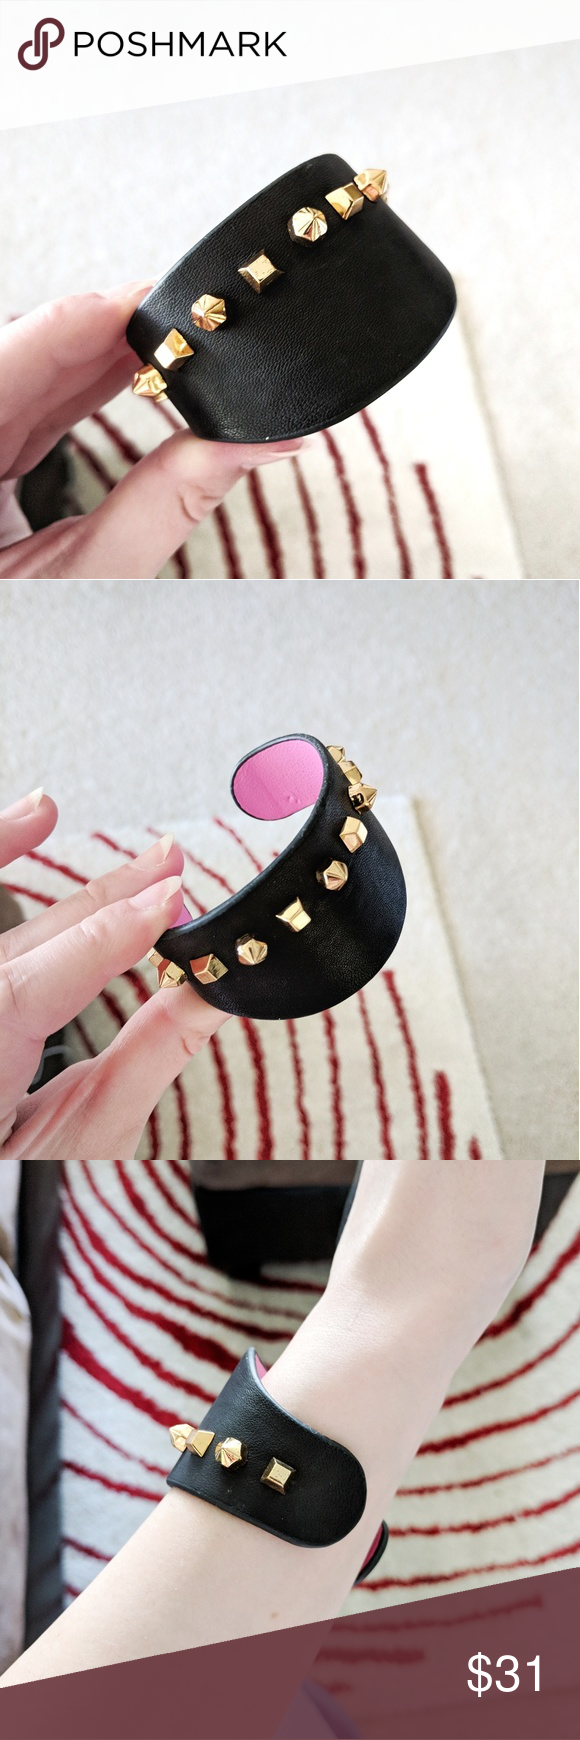 5db28a57f Vince Camuto black leather stud cuff bracelet Vince Camuto black leather  studded wide cuff bracelet. - gold spike studs and pink interior.